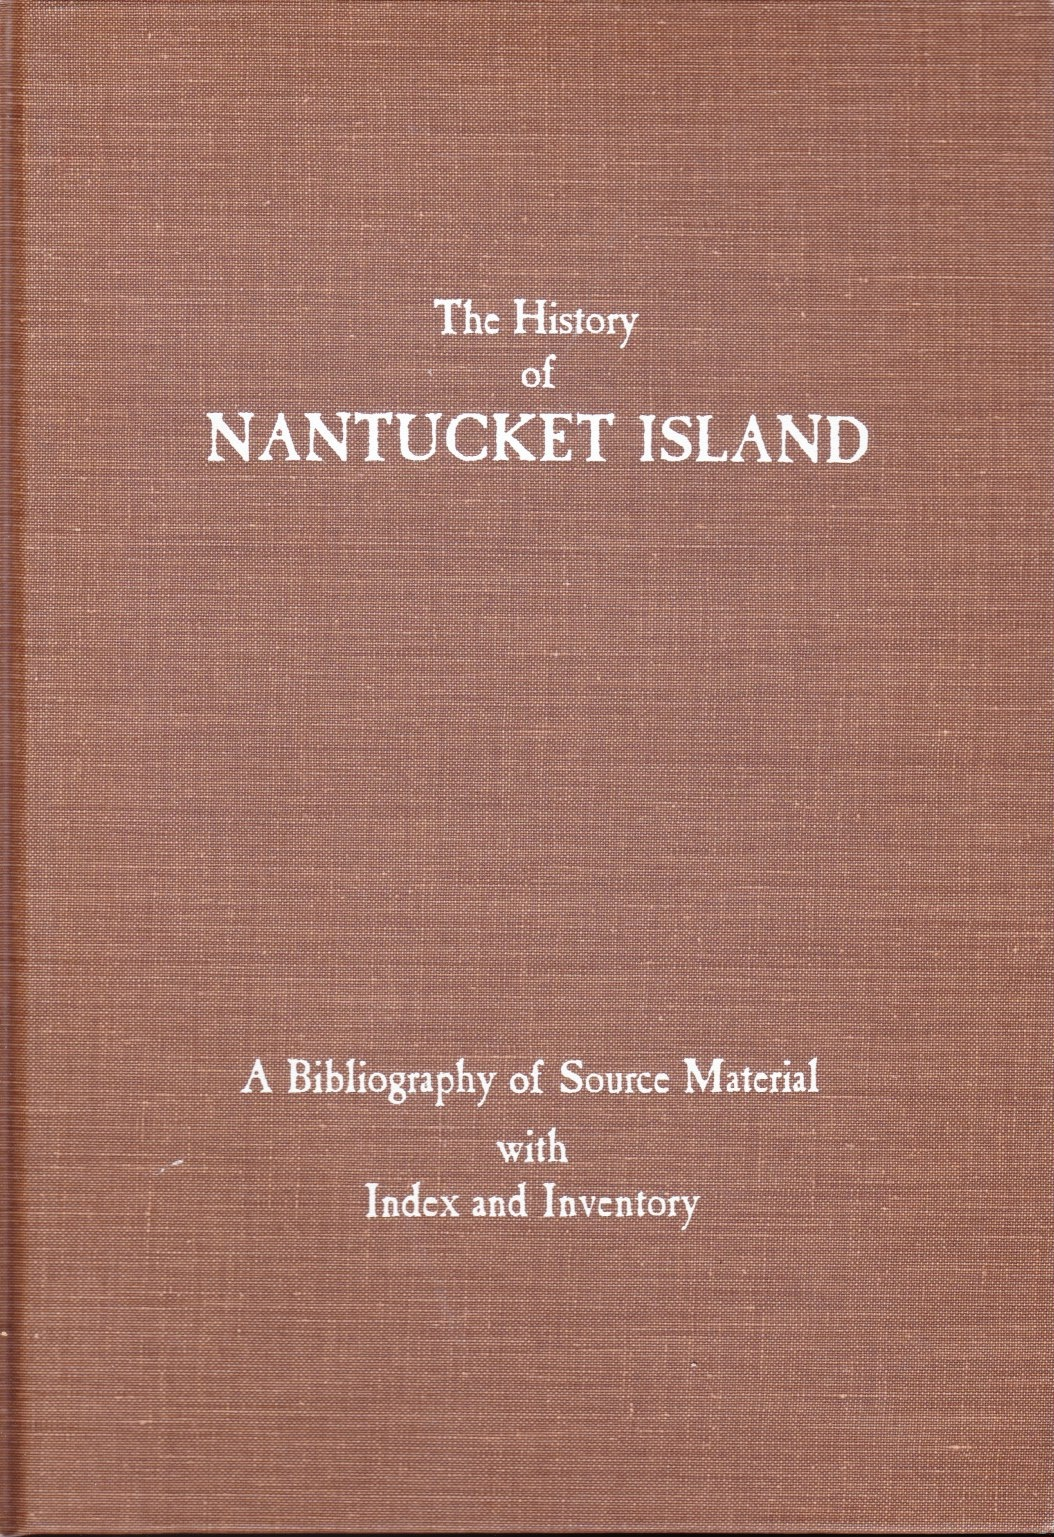 Image for The History of Nantucket Island A Bibliography of Source Material with Index and Inventory